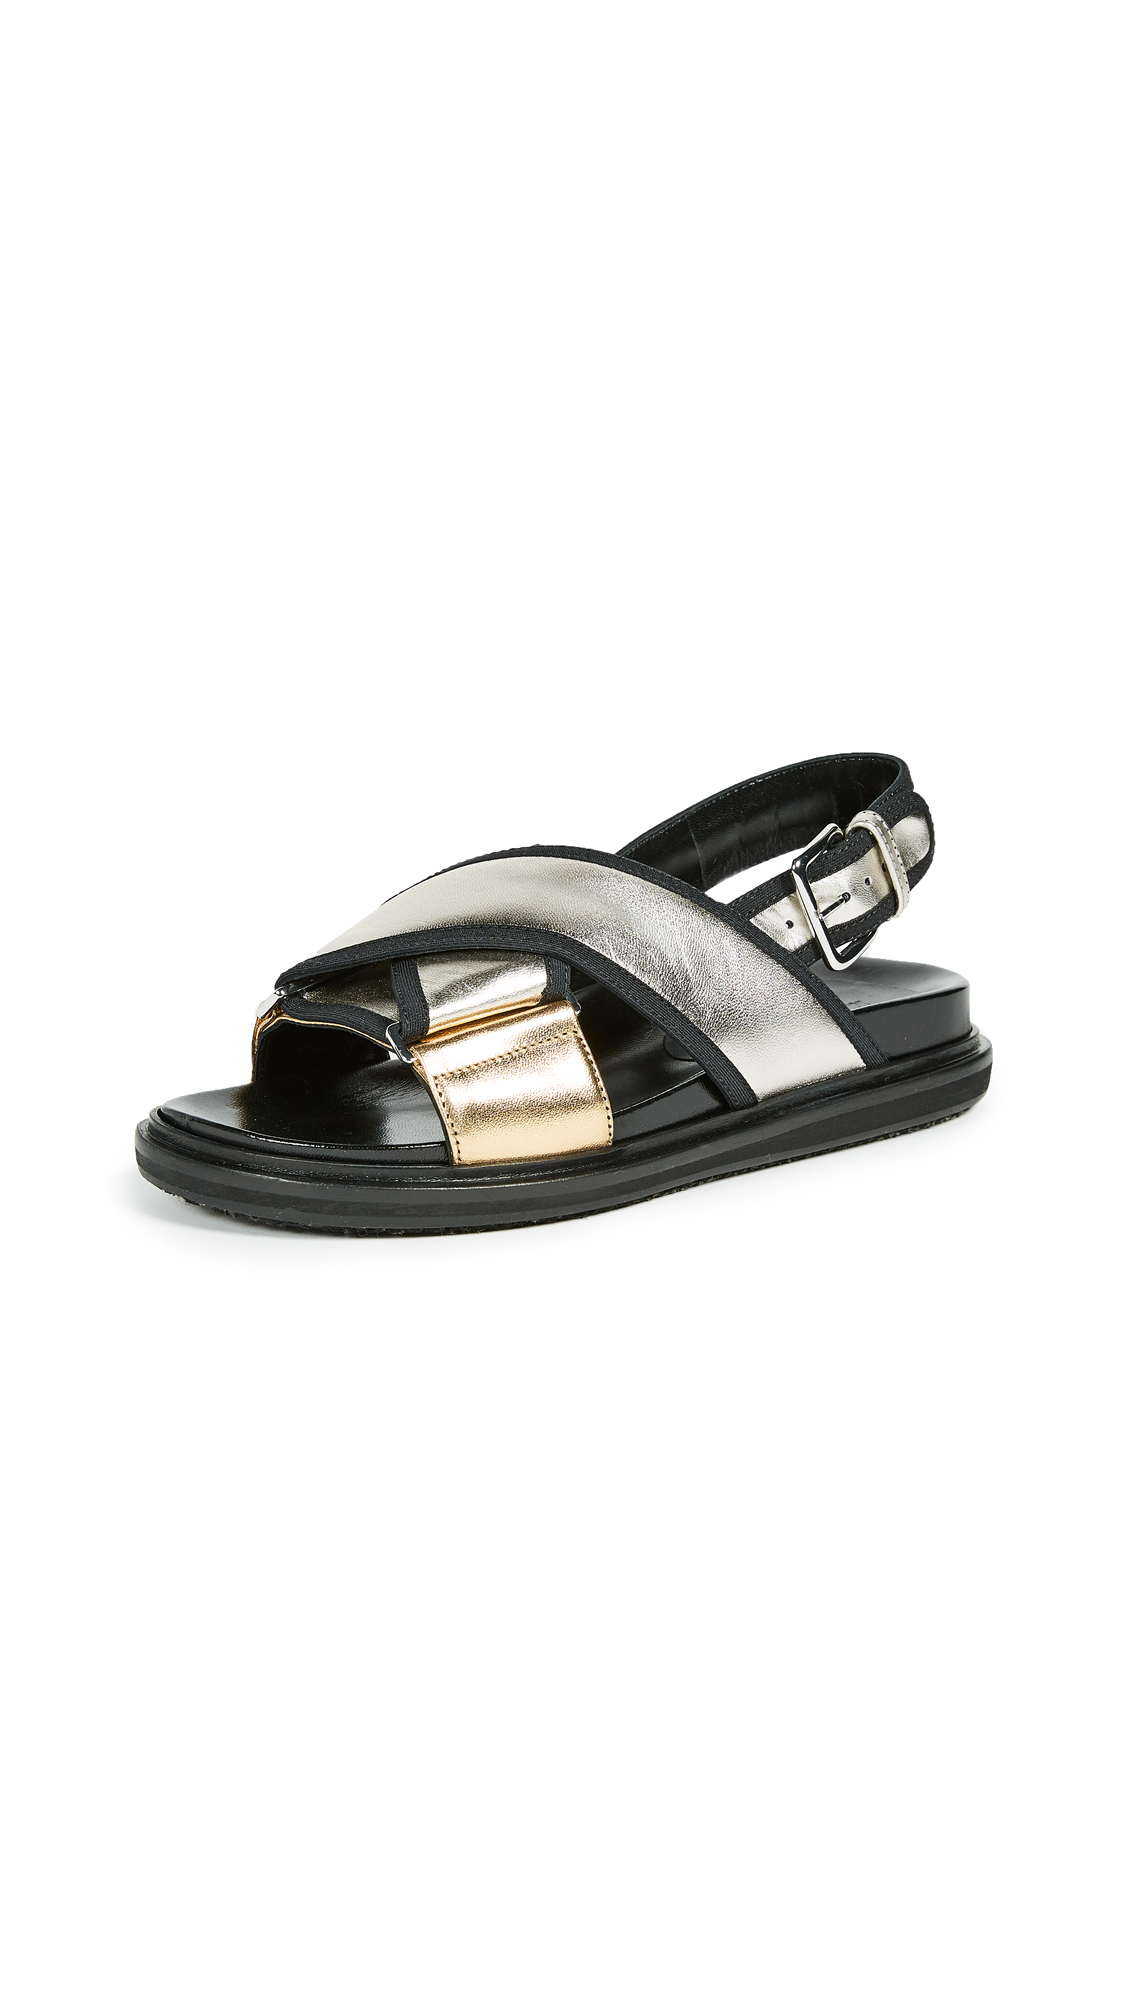 Marni Fusbett Sandals with Buckle - Light Gold Sand/Silver